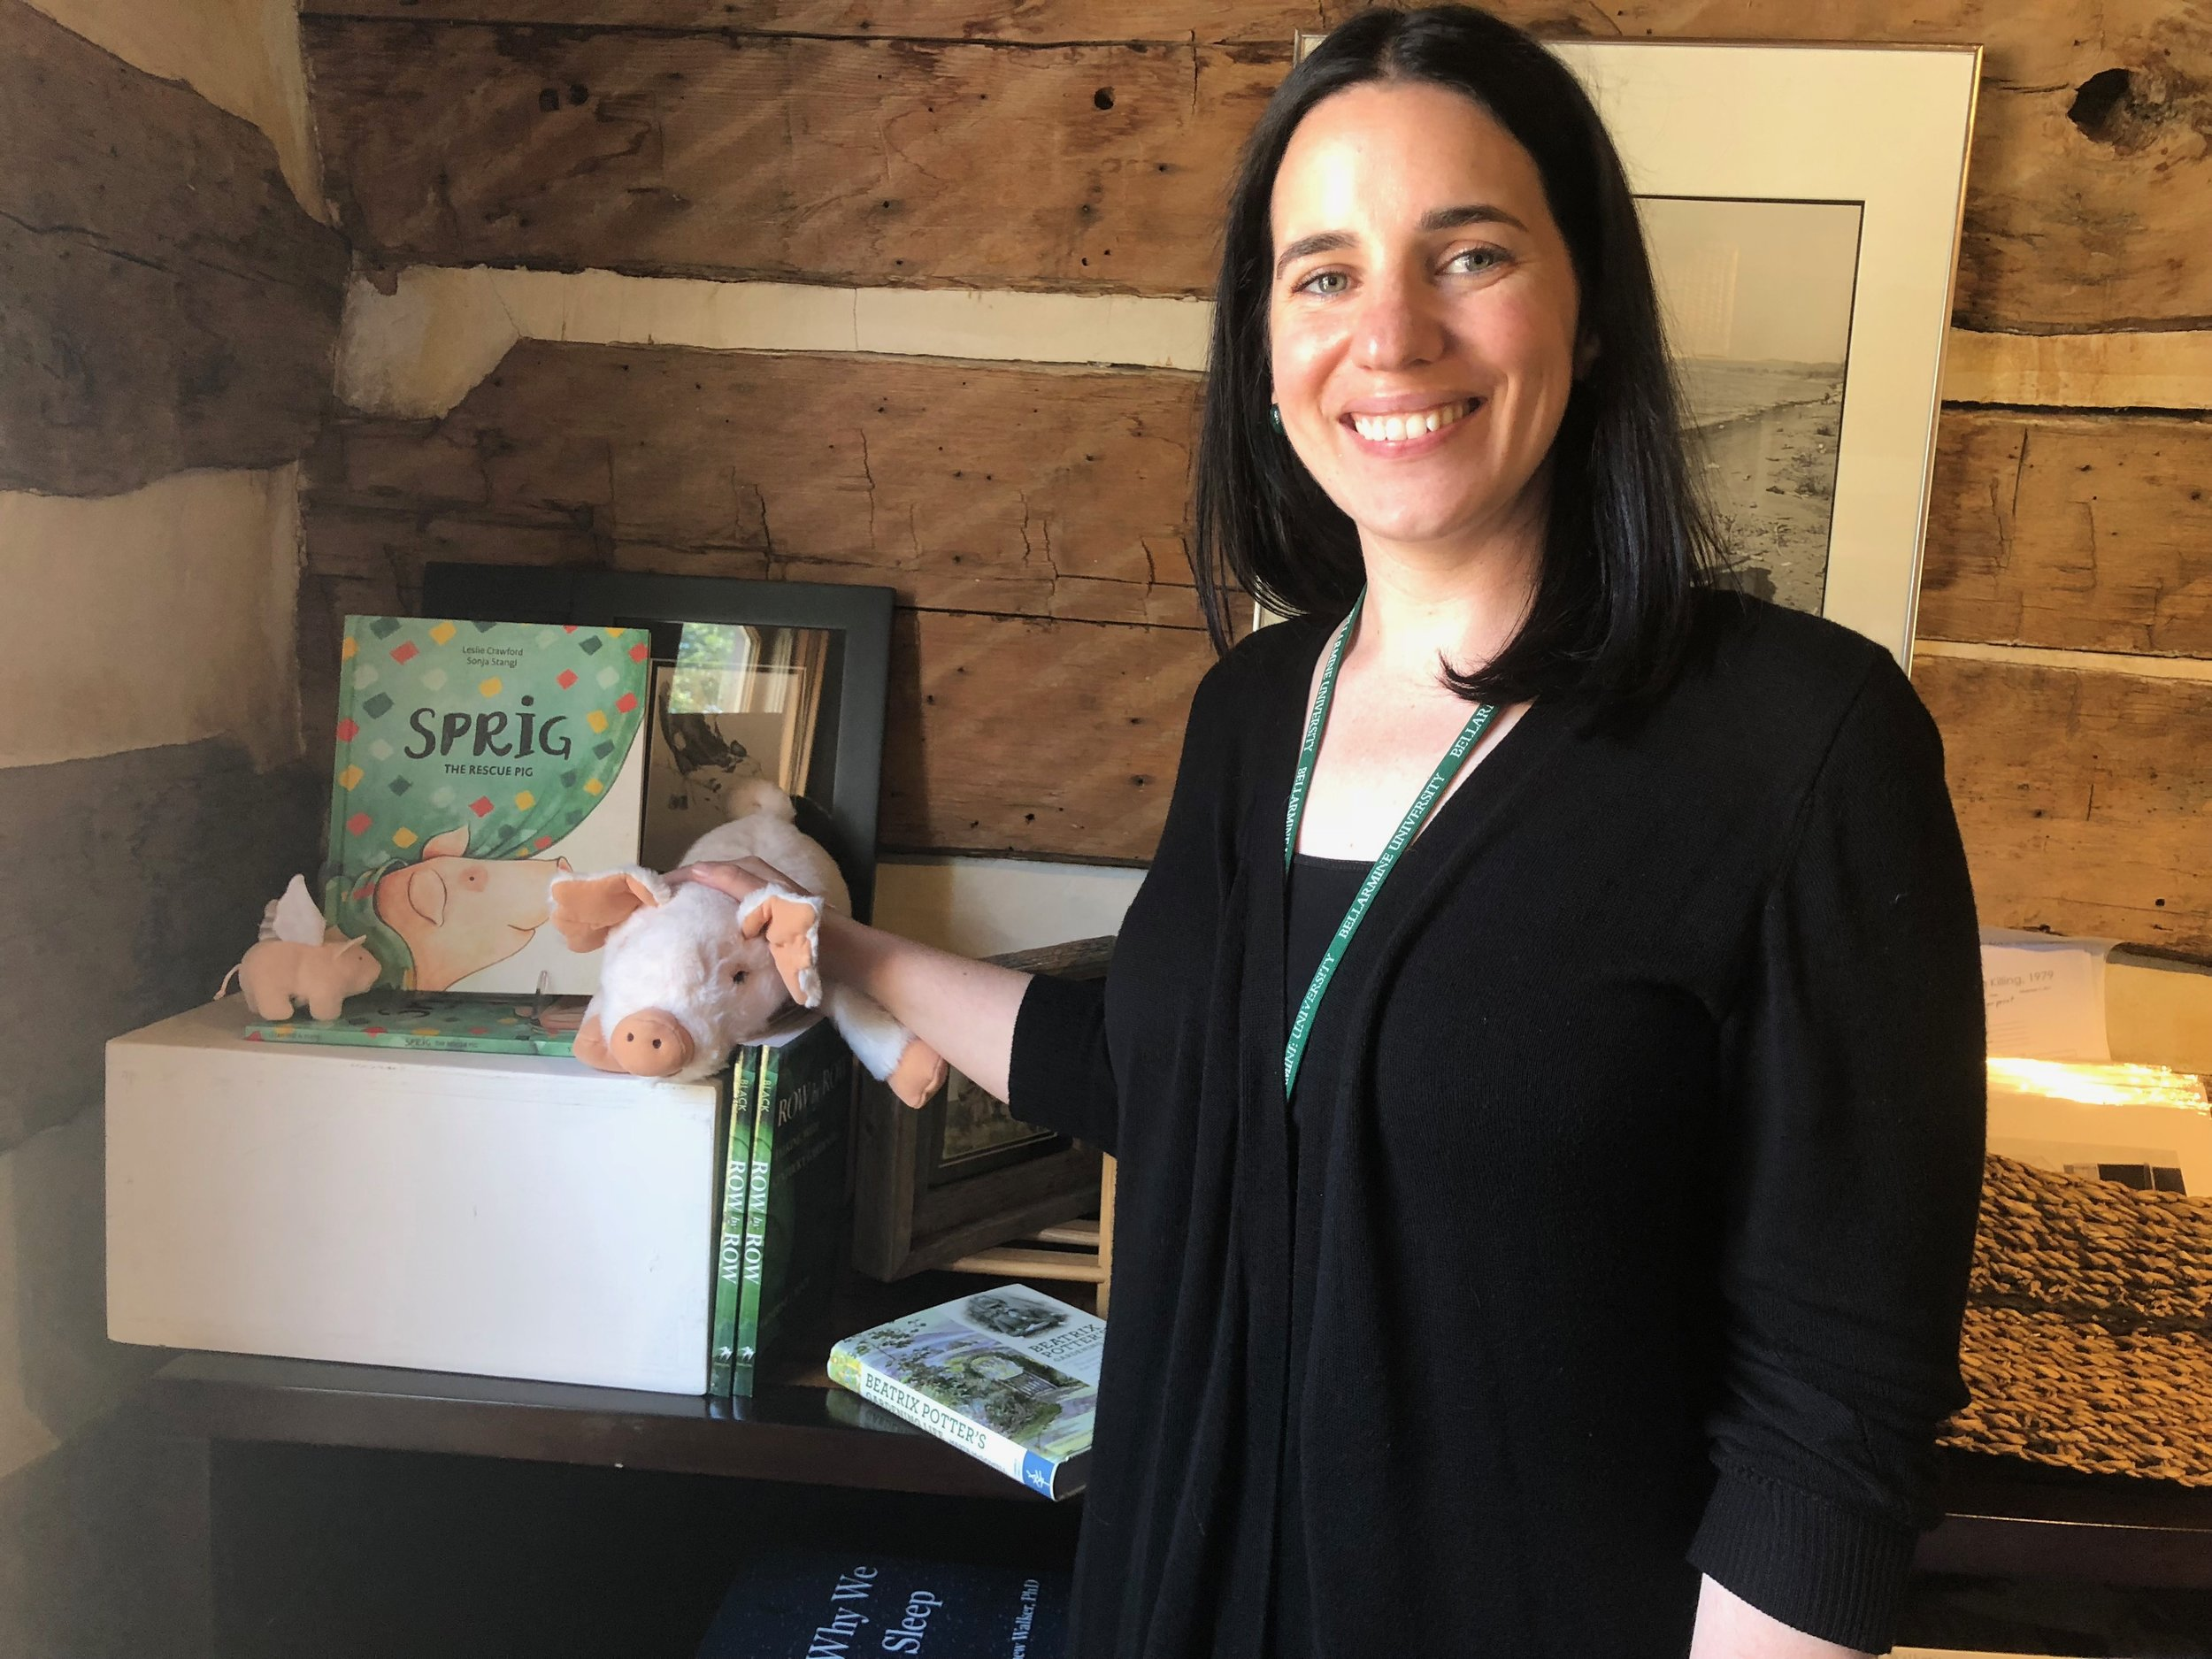 Sprig in the house! With Mary Aguilar at the  Agrarian Culture Center and Bookstore  at the Wendell Berry Center, in New Castle, Kentucky.